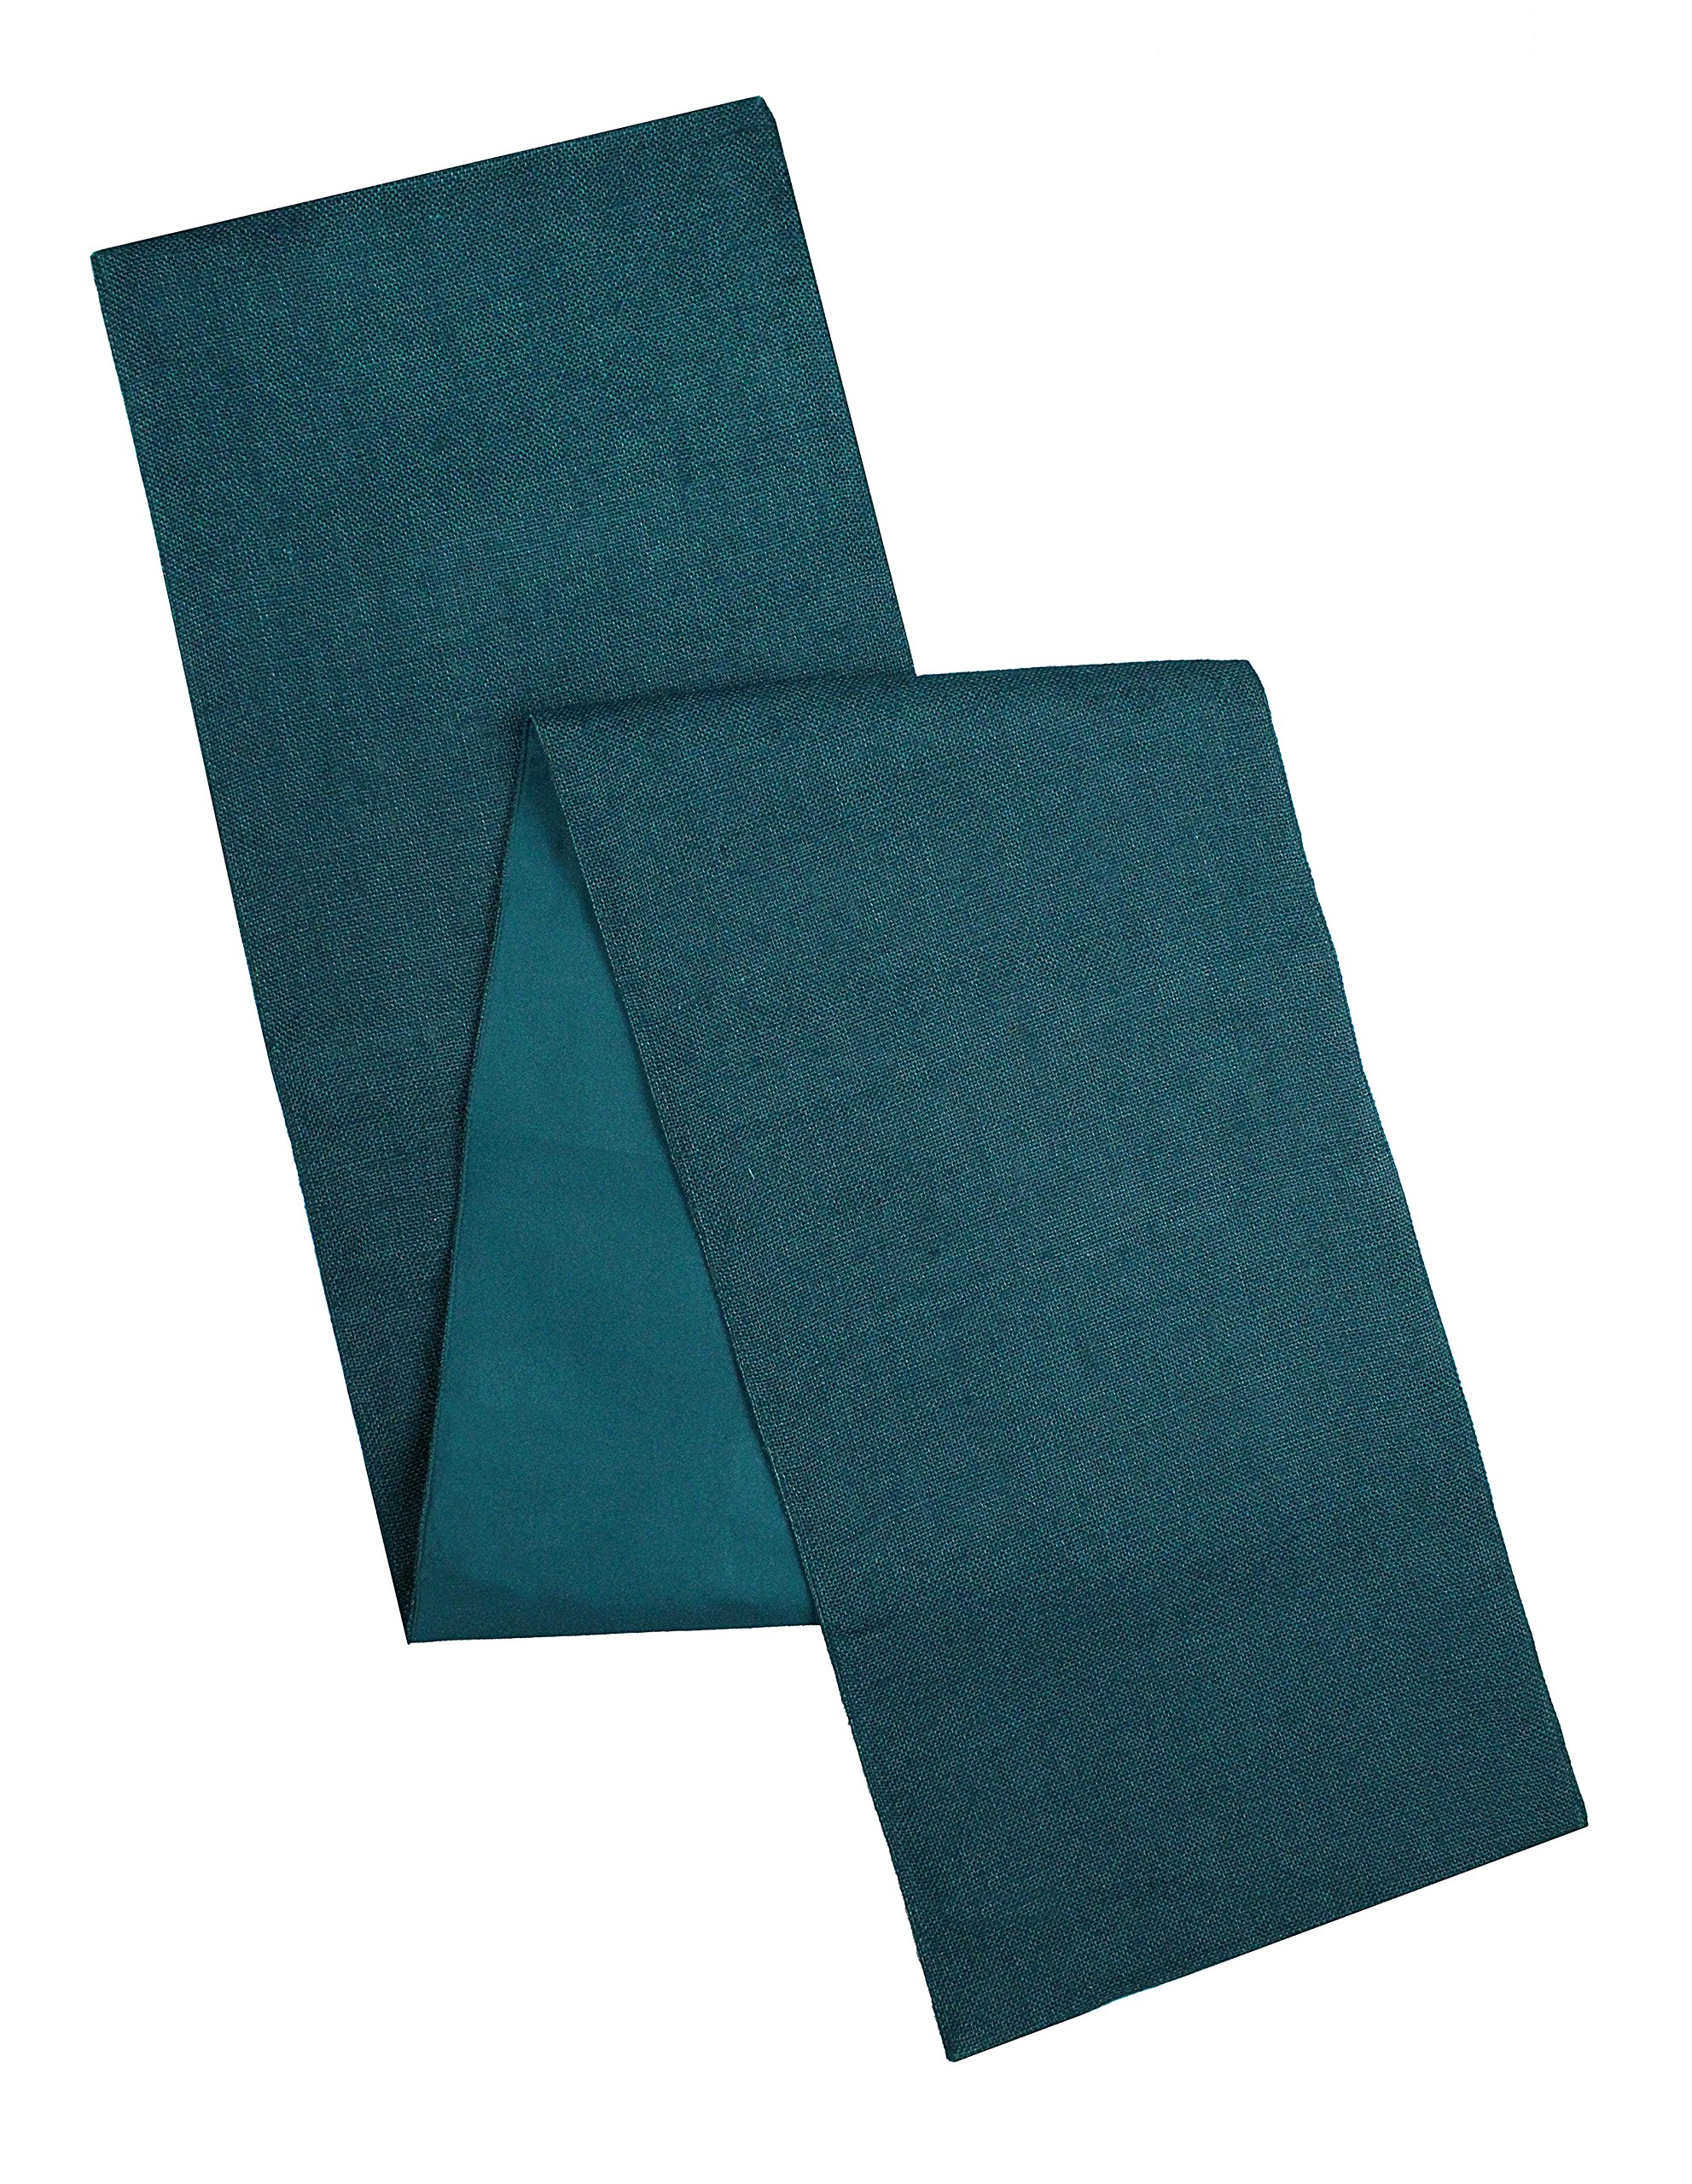 Cotton Craft - Solid Color Jute Table Runner 13x108 - Teal - Perfect Accessory to Dress Up Your Dinner Table - Made from 100% Jute - Spot Clean Only